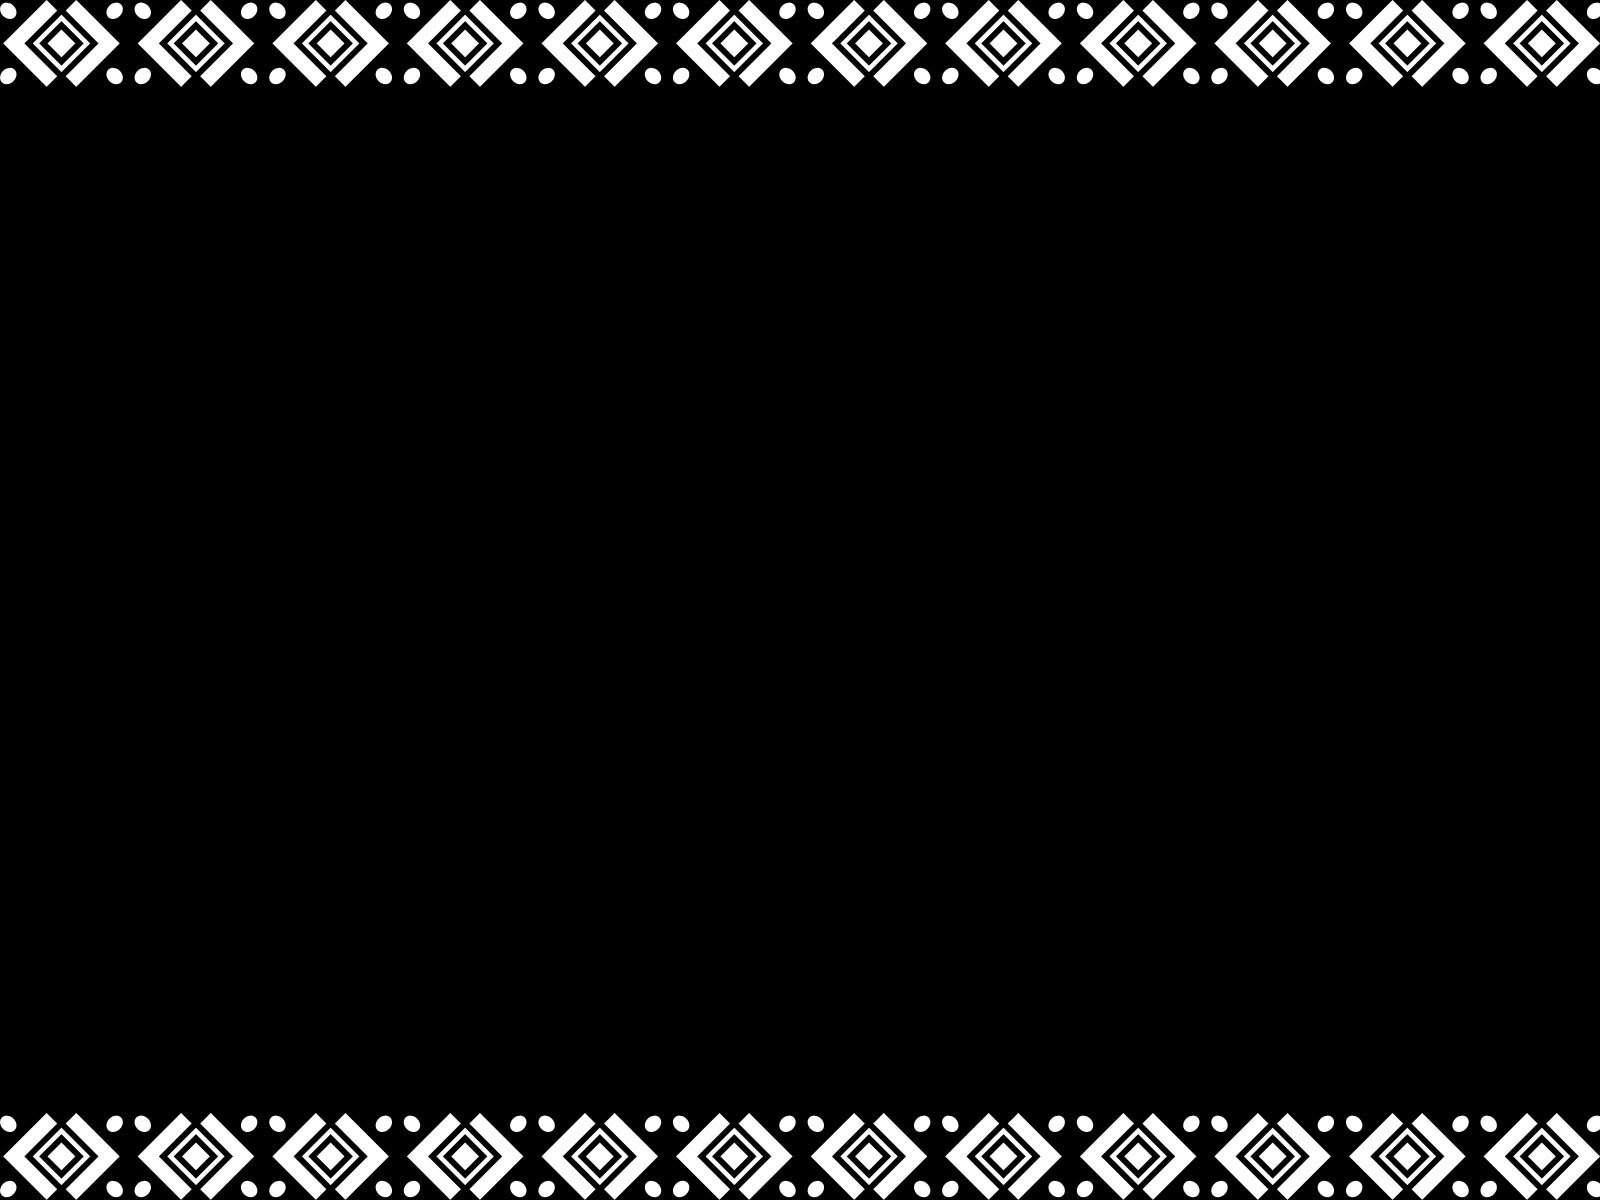 Free Download Plain Black Wallpaper Border 18 Background